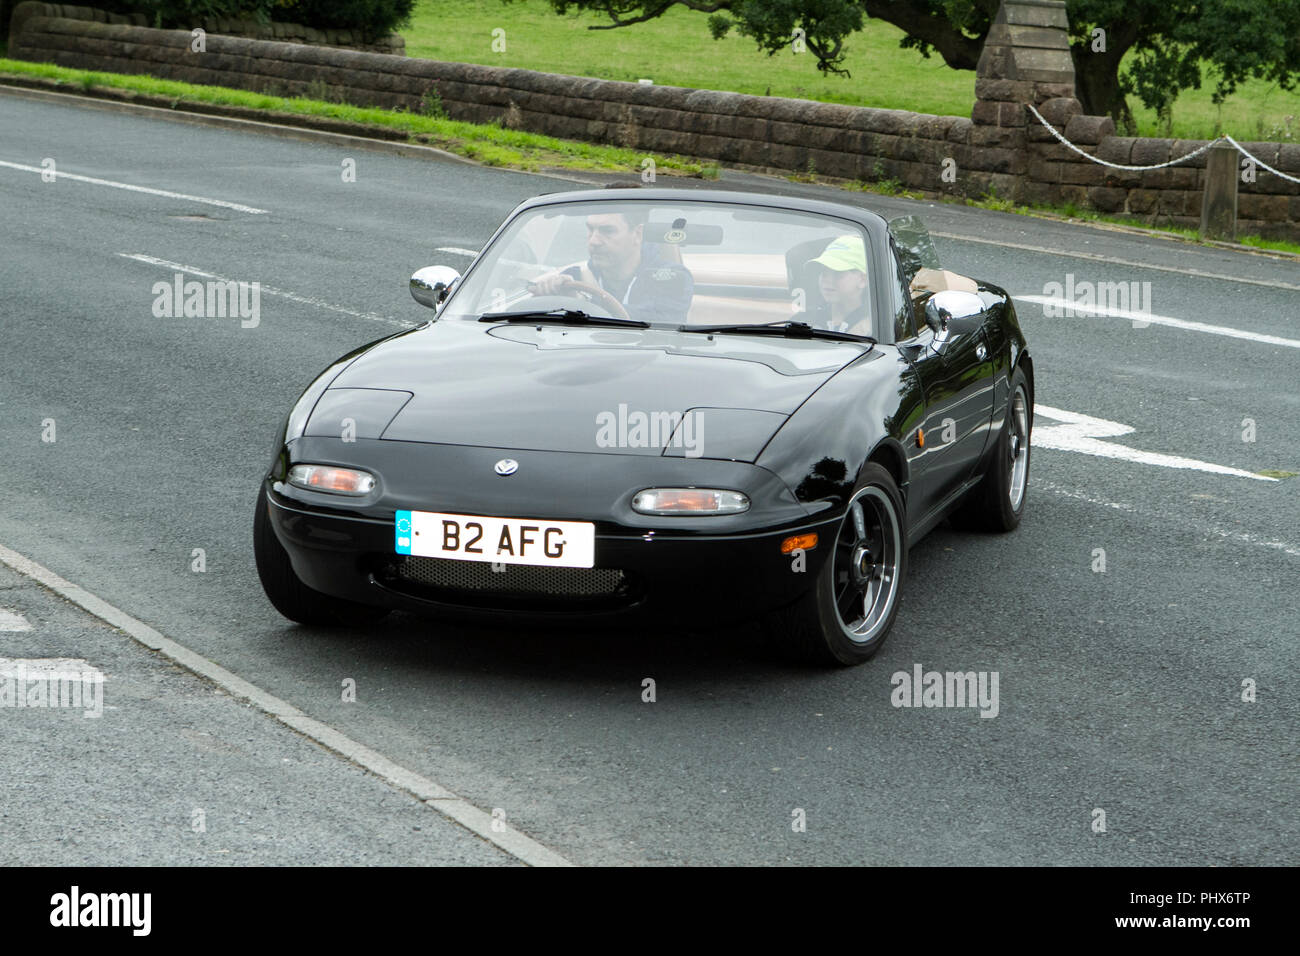 Classic Mazda Stock Photos & Classic Mazda Stock Images - Page 2 - Alamy